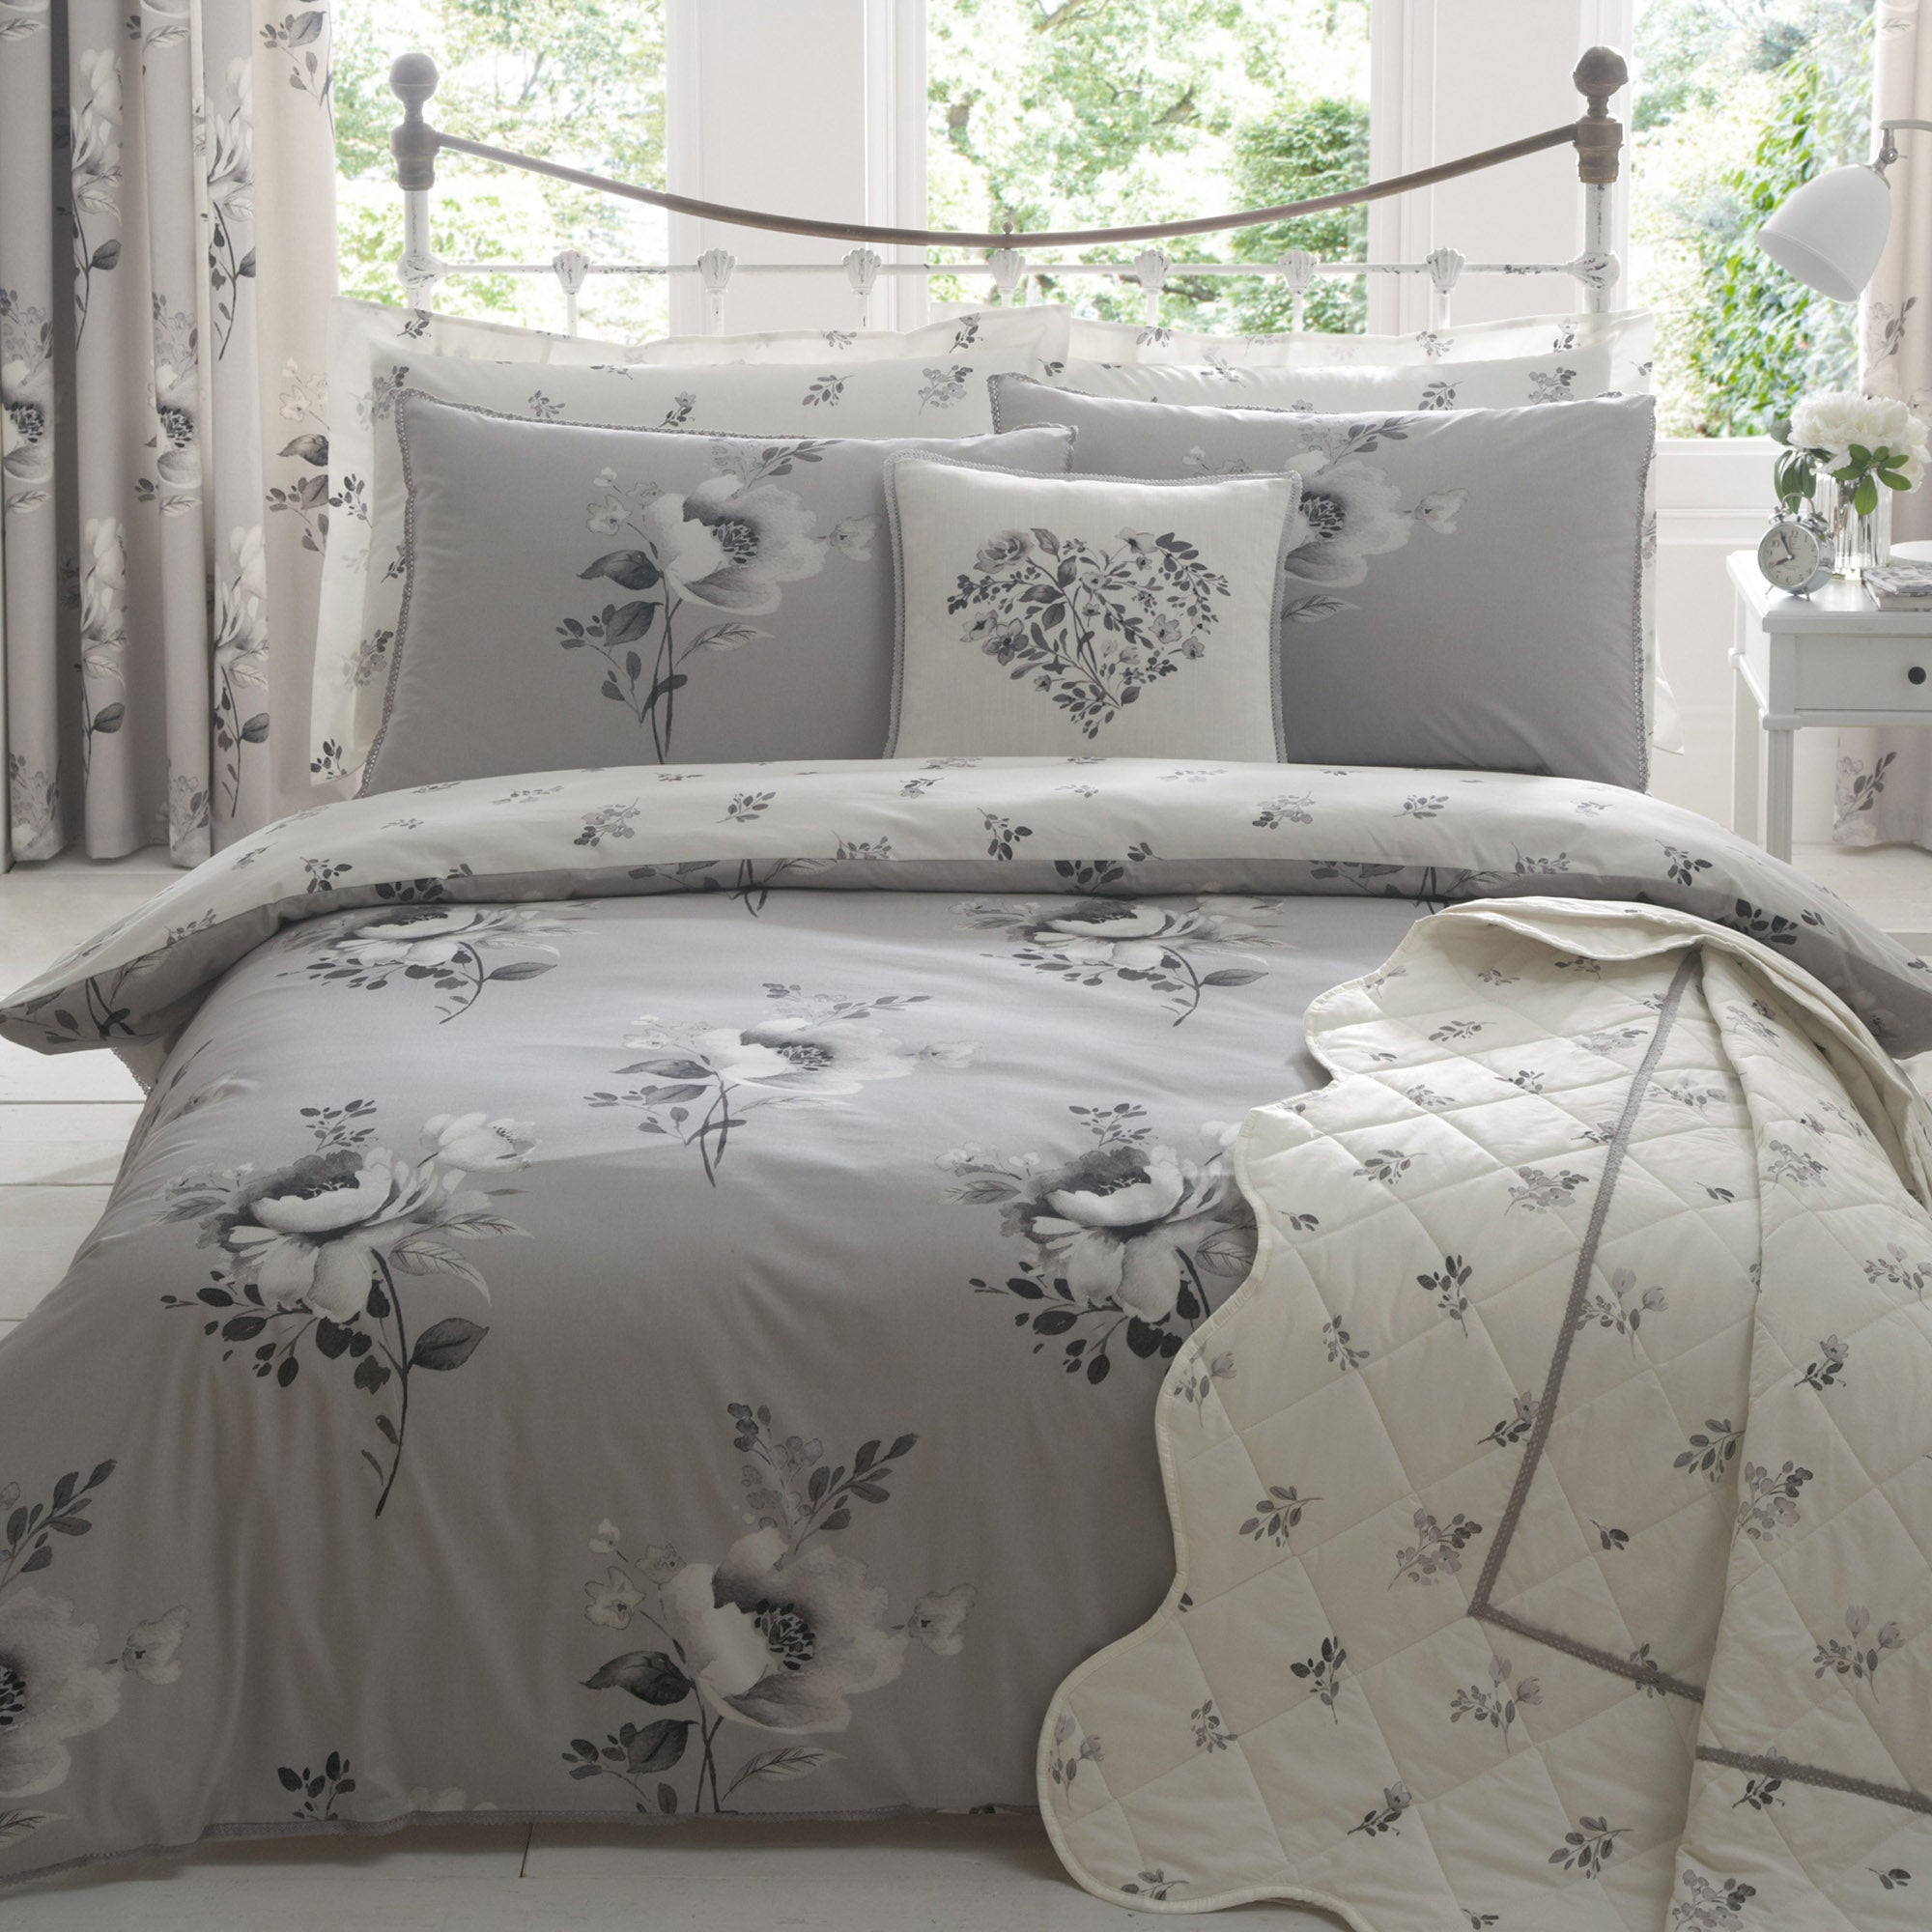 Liana Grey Bed Linen Collection